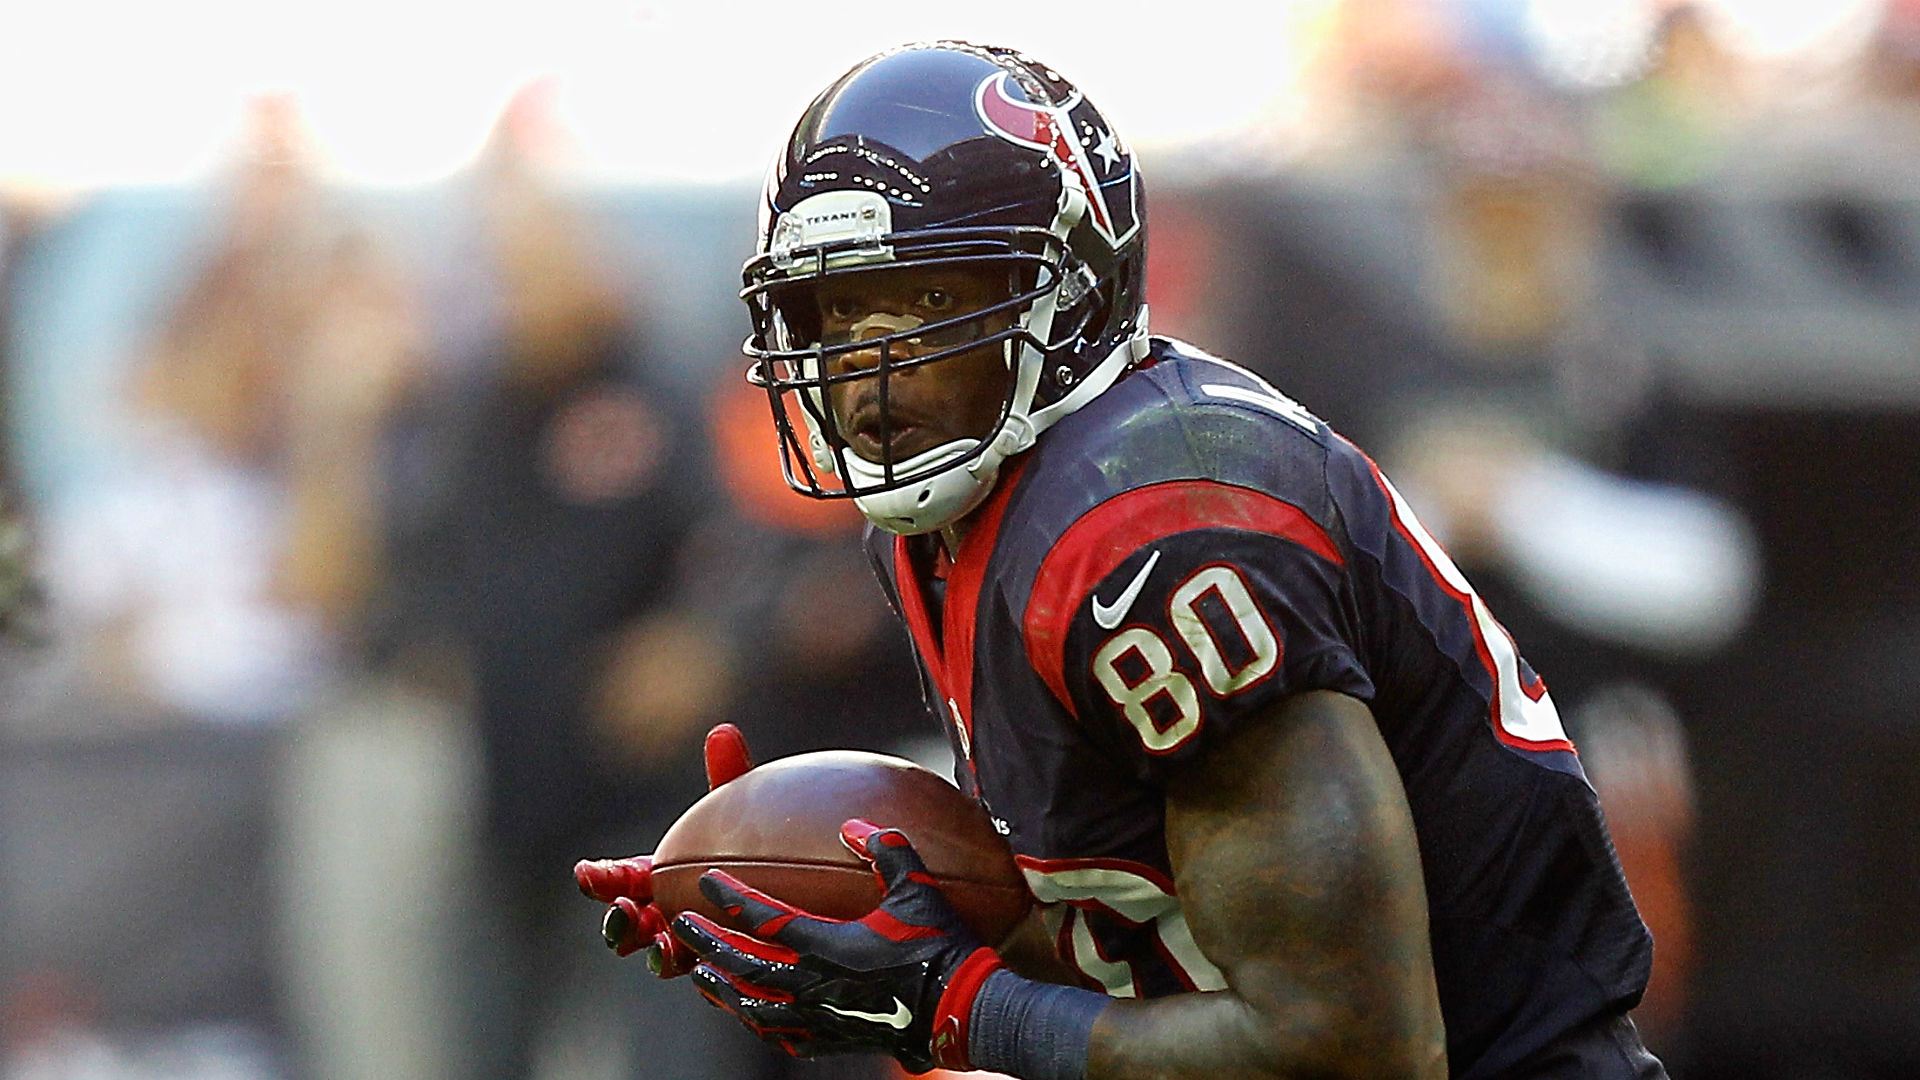 Andre Johnson to sign one-day contract to retire a Texan